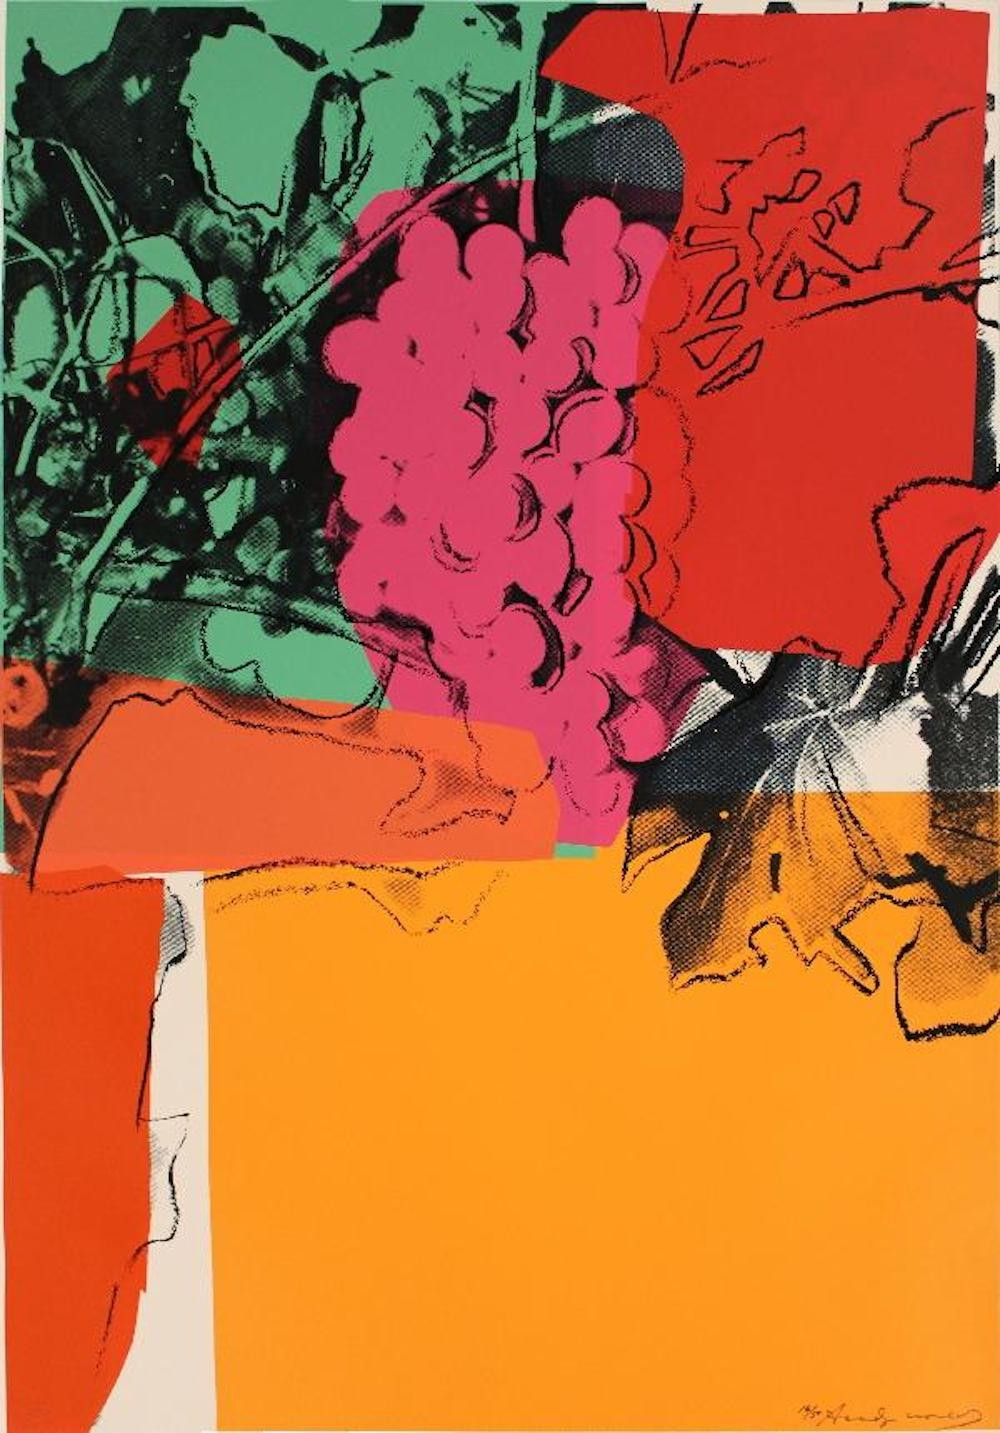 Andy Warhol | Grapes 190 | 1979 | Image of Artists' work.